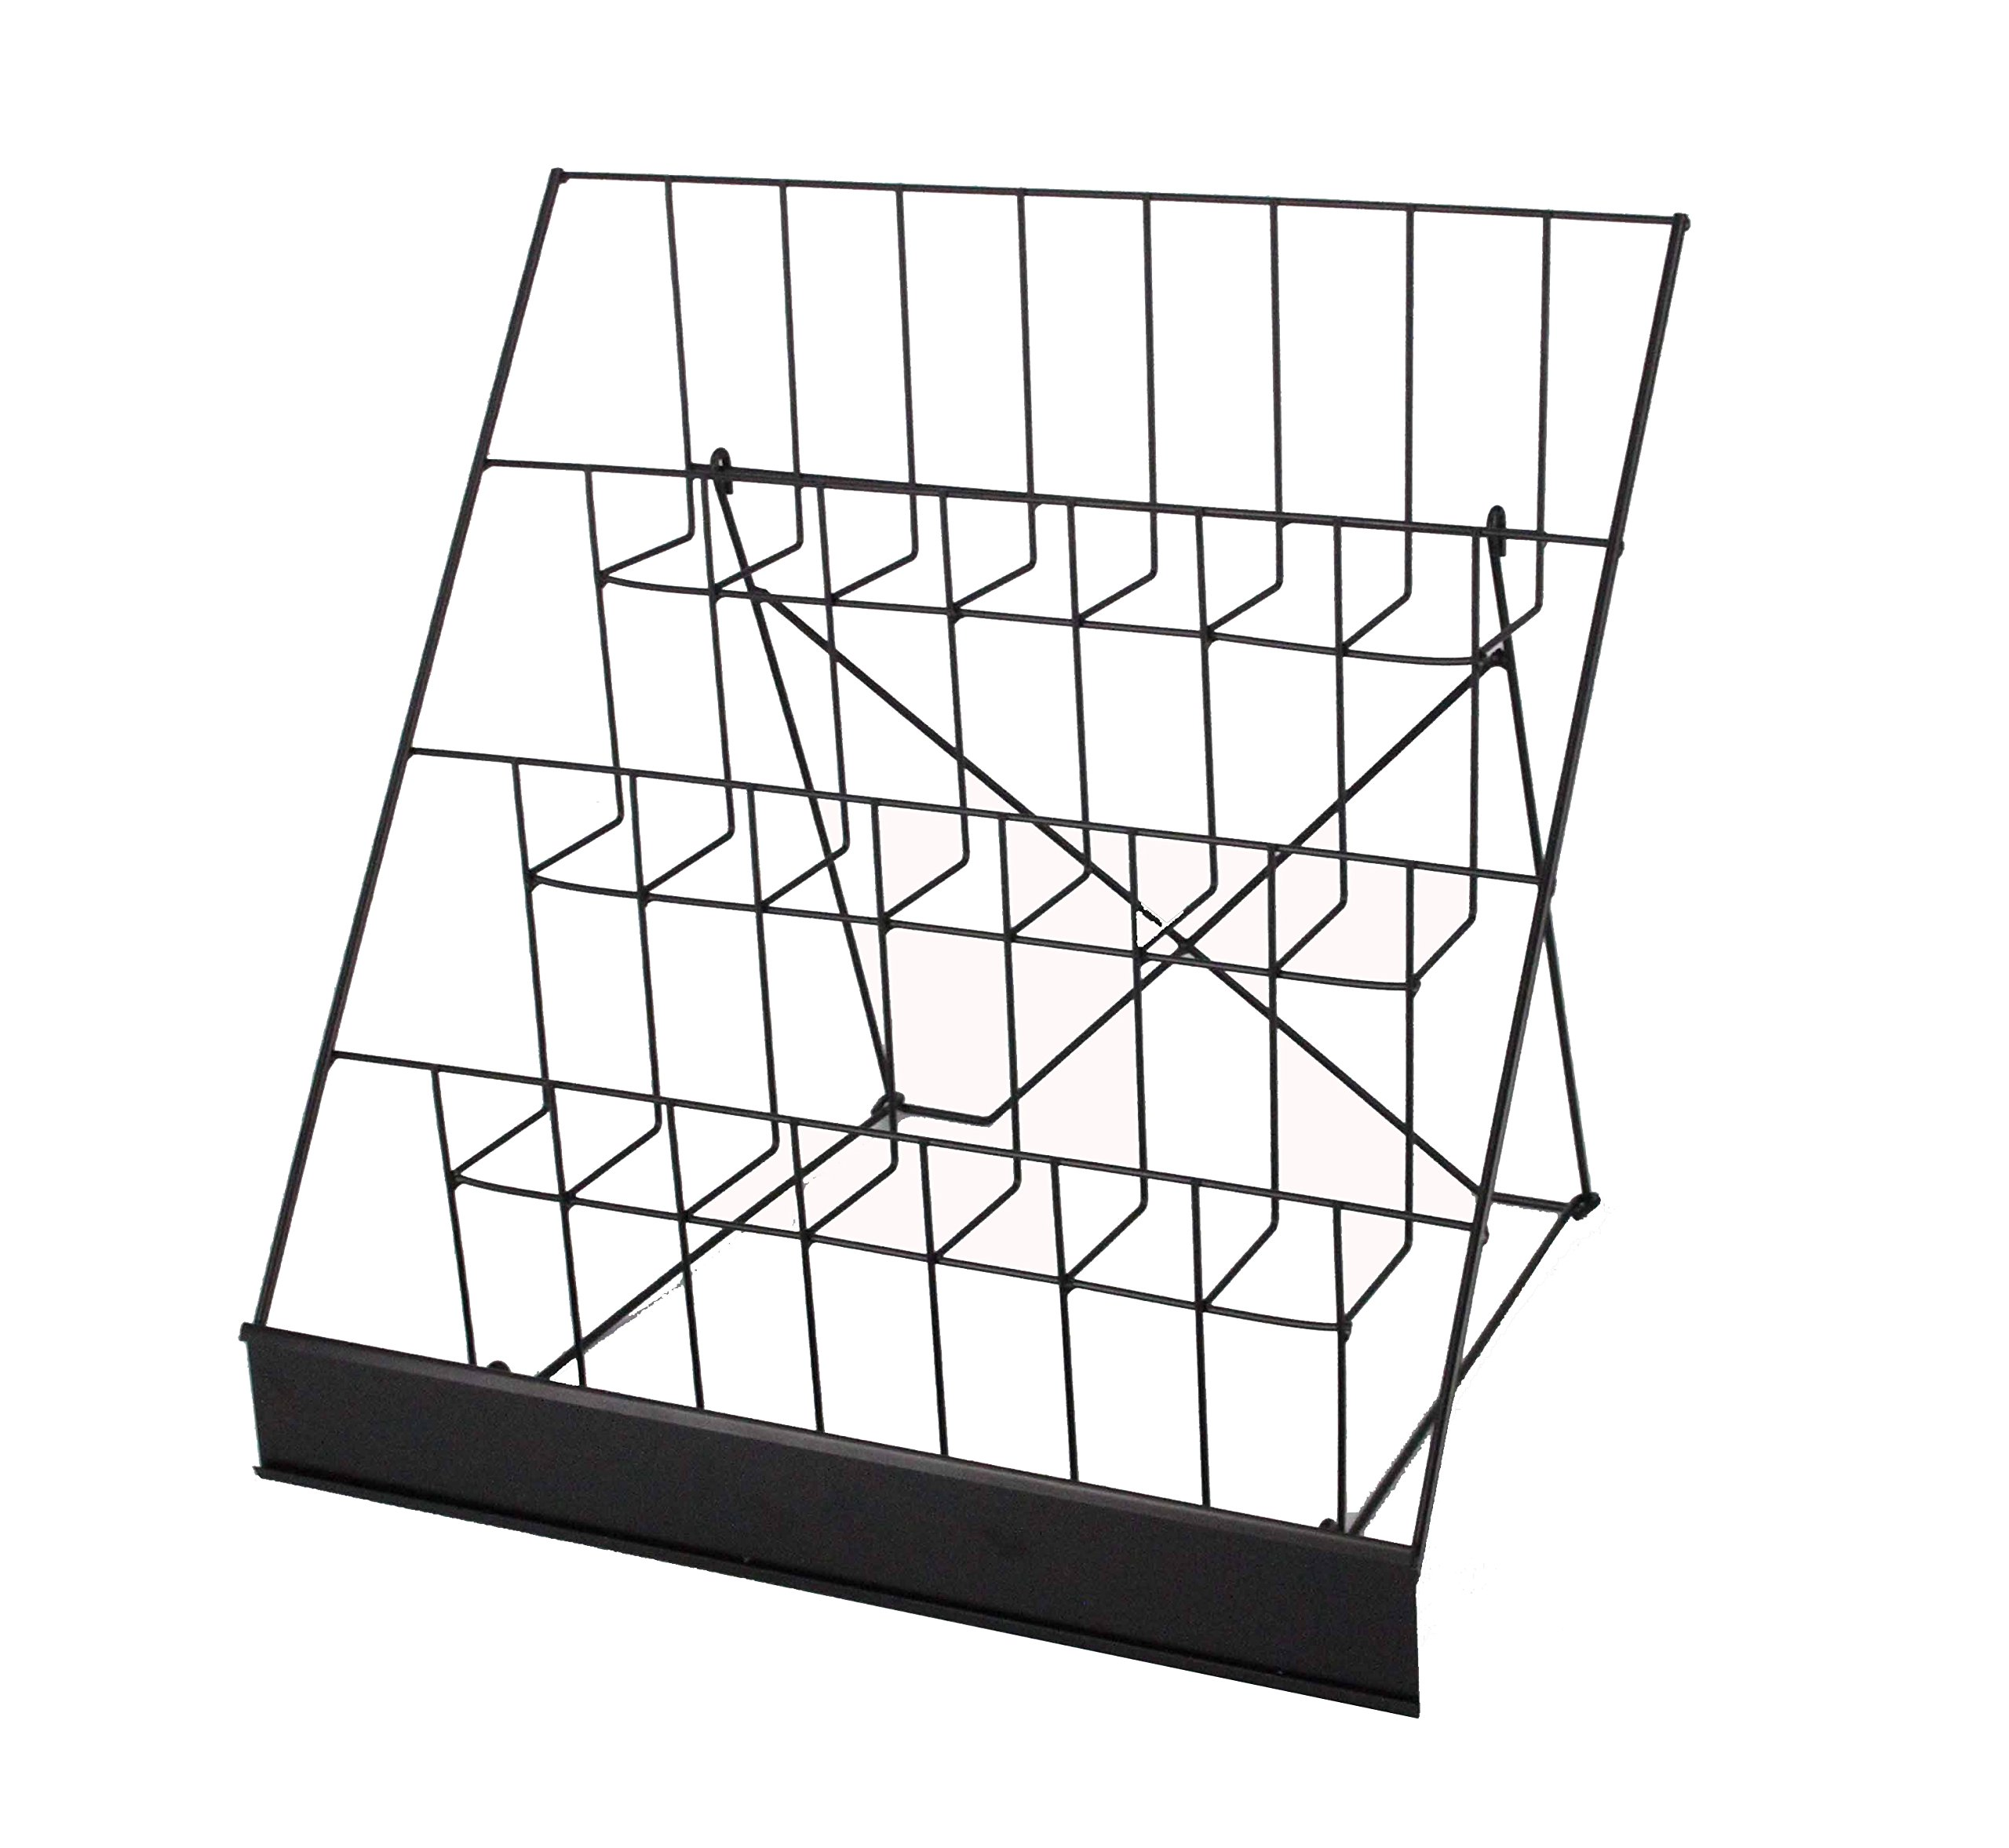 FixtureDisplays 4-Tiered Greeting Card Rack, 18'' Wire Greeting Card Holder for Tabletop Use, 2.5'' Open Shelves, with Header - Black 119362-Greeting Card by FixtureDisplays